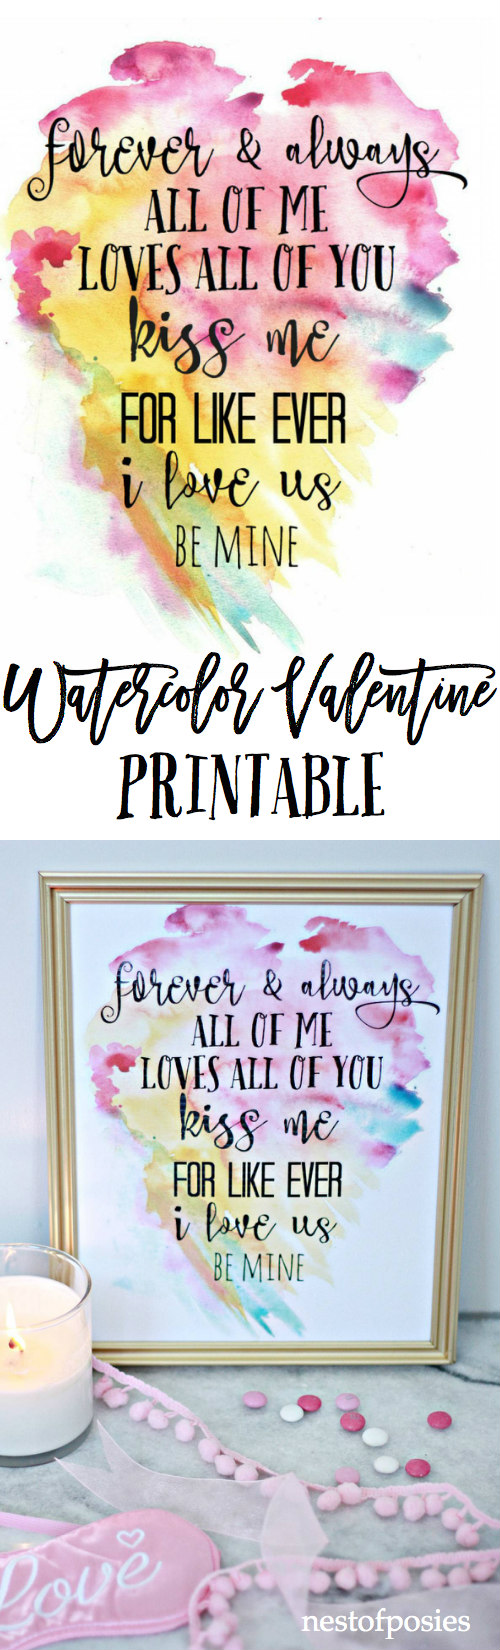 Watercolor Valentine Printable. Perfect for home decor or to use as a card